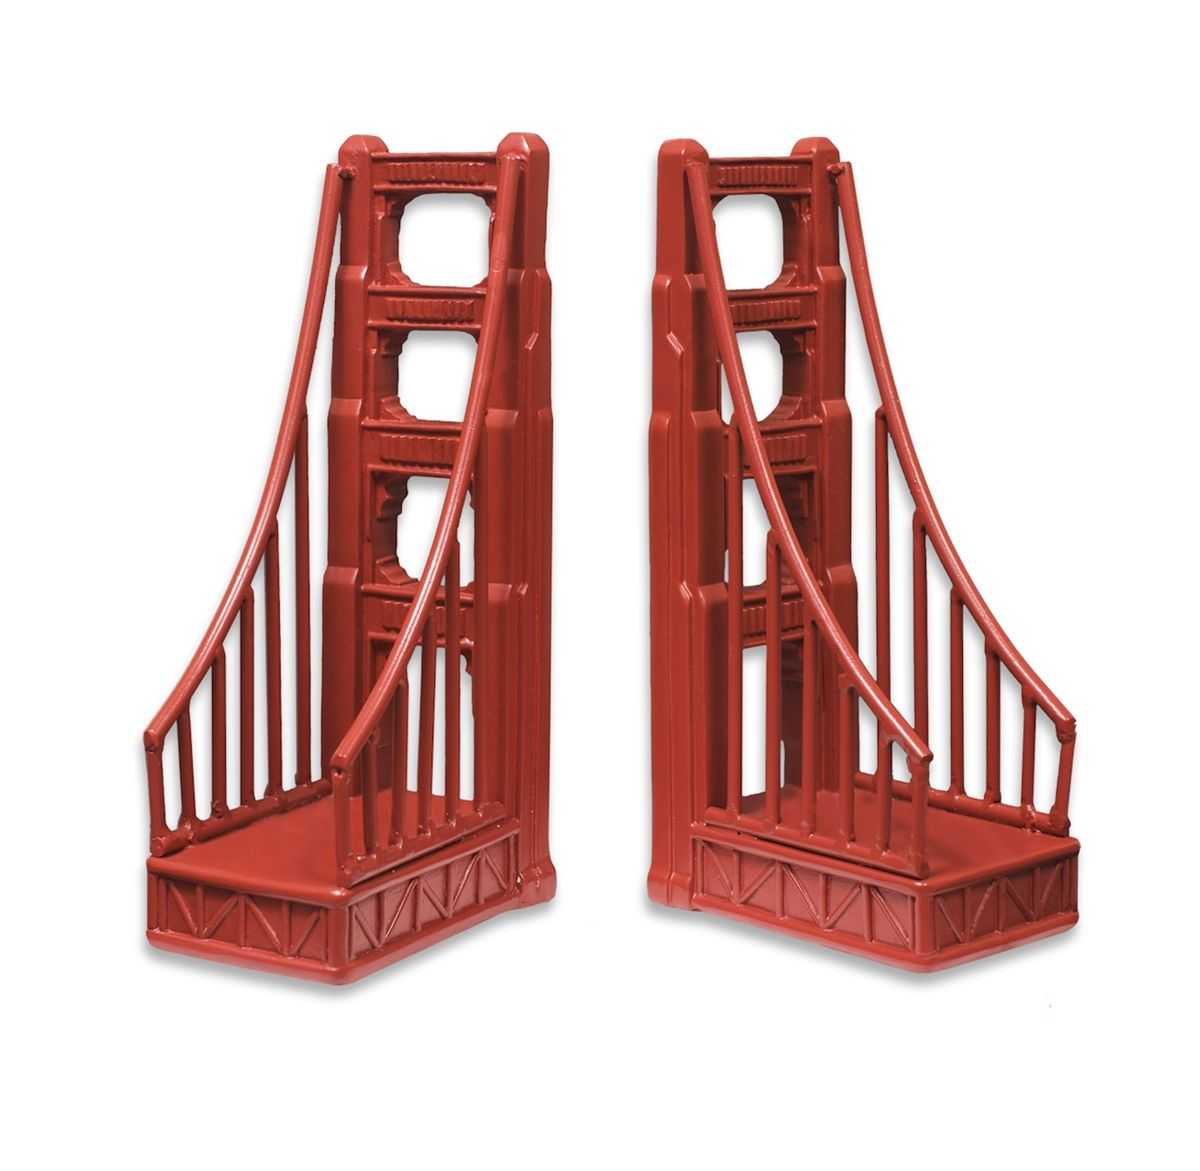 Book Ends Golden Gate Bridge (With images) Travel room